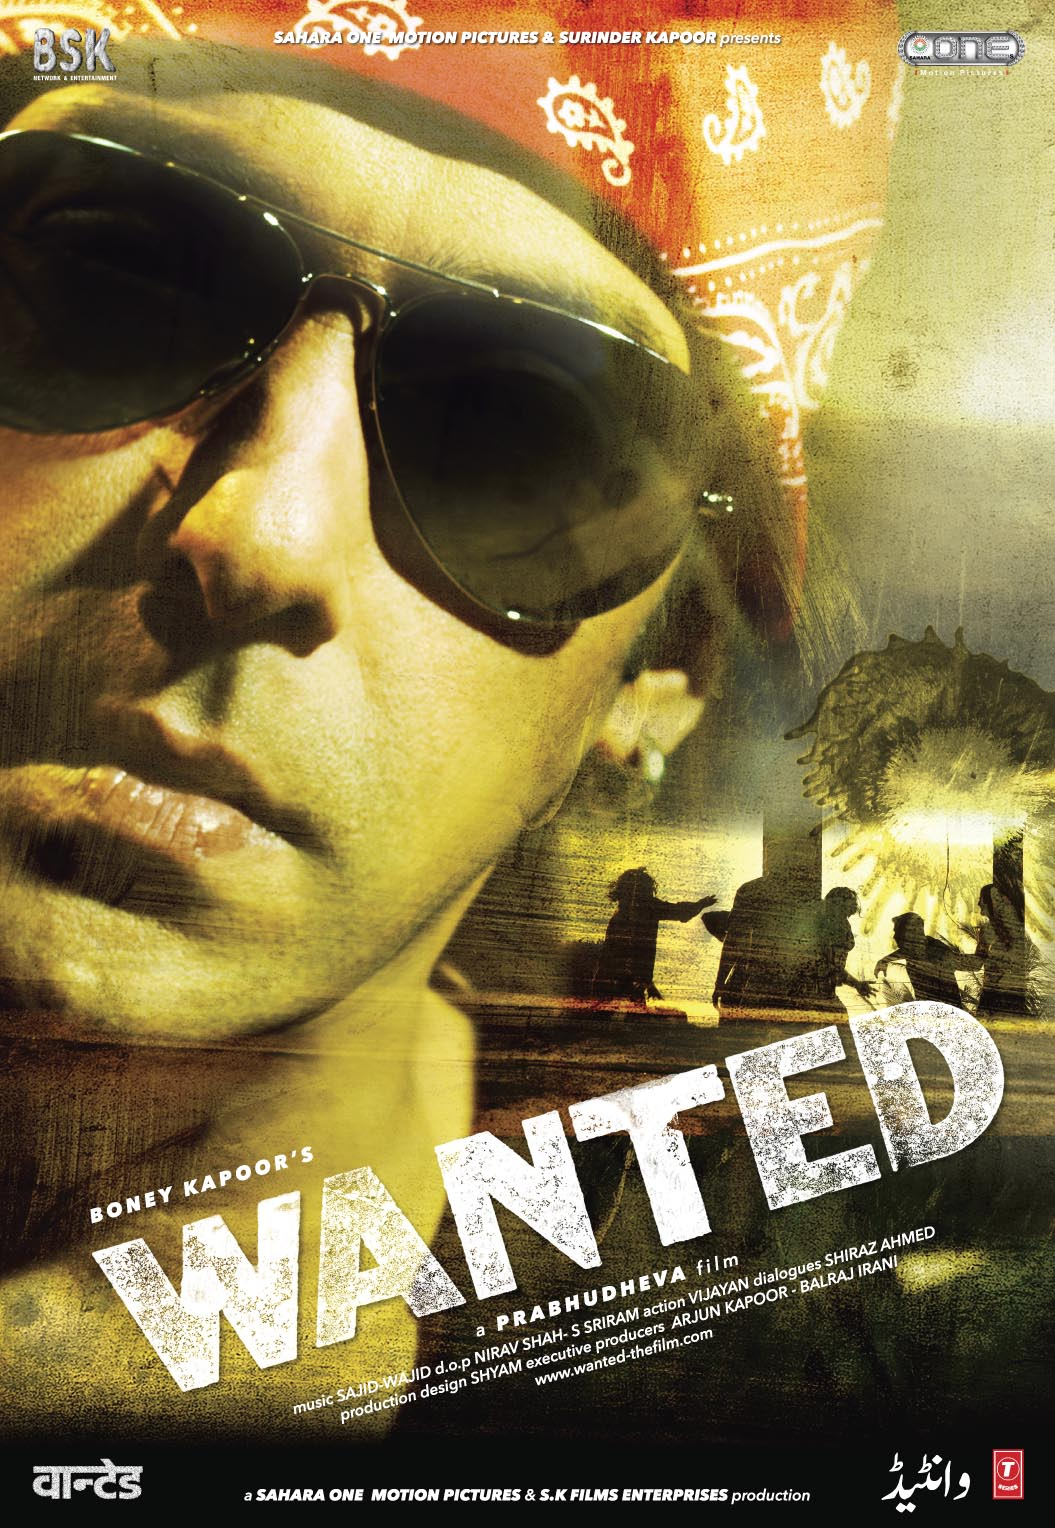 http://1.bp.blogspot.com/-VL_tV5y1tfg/TVWECpbpuoI/AAAAAAAAAvw/zeuOdeM6qZs/s1600/wanted-hindi-movie-wallpaper-01.jpg